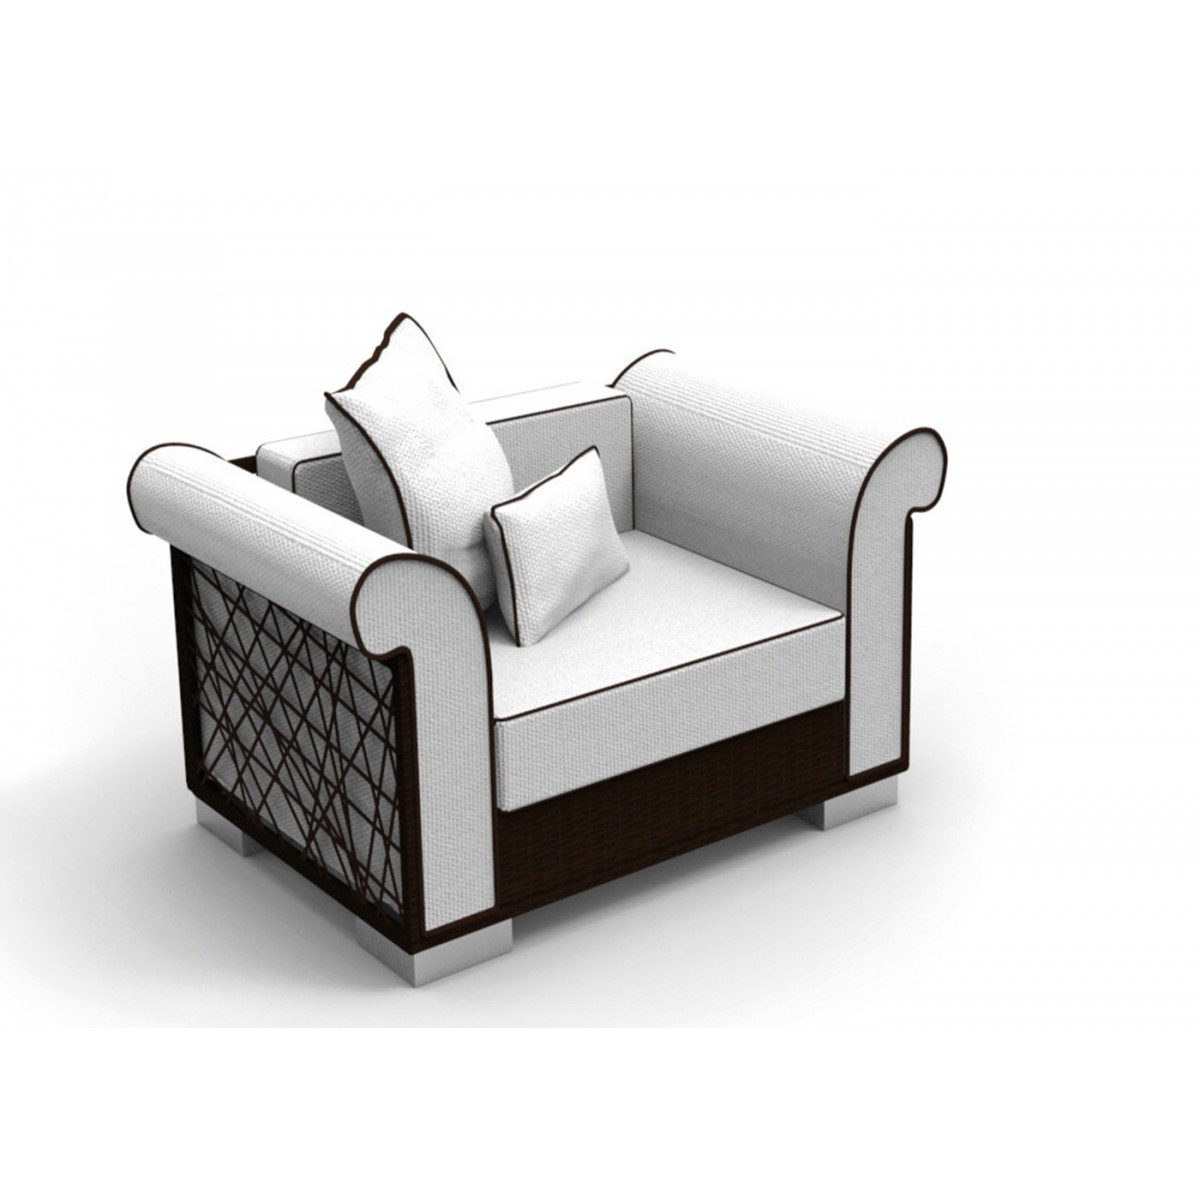 fauteuil en osier brun ou blanc par roberto serio pour talenti. Black Bedroom Furniture Sets. Home Design Ideas